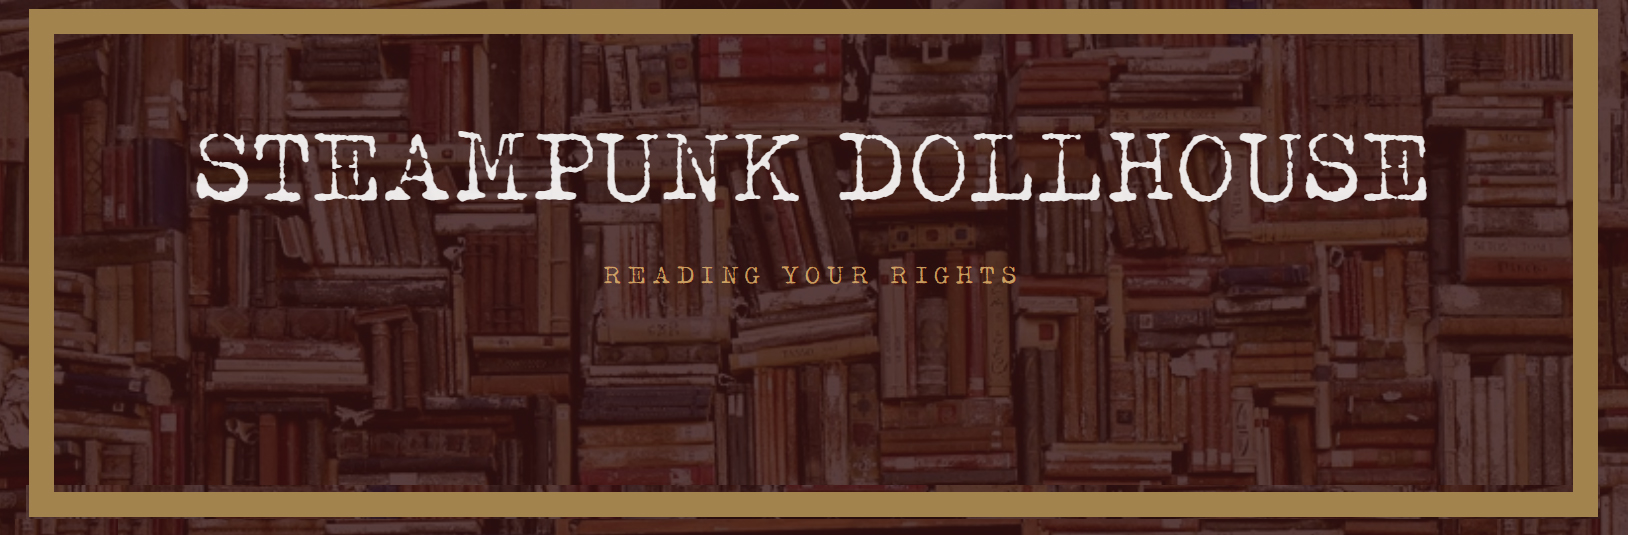 background of books on a shelf in sepia tone with the words steampunk dollhouse on top